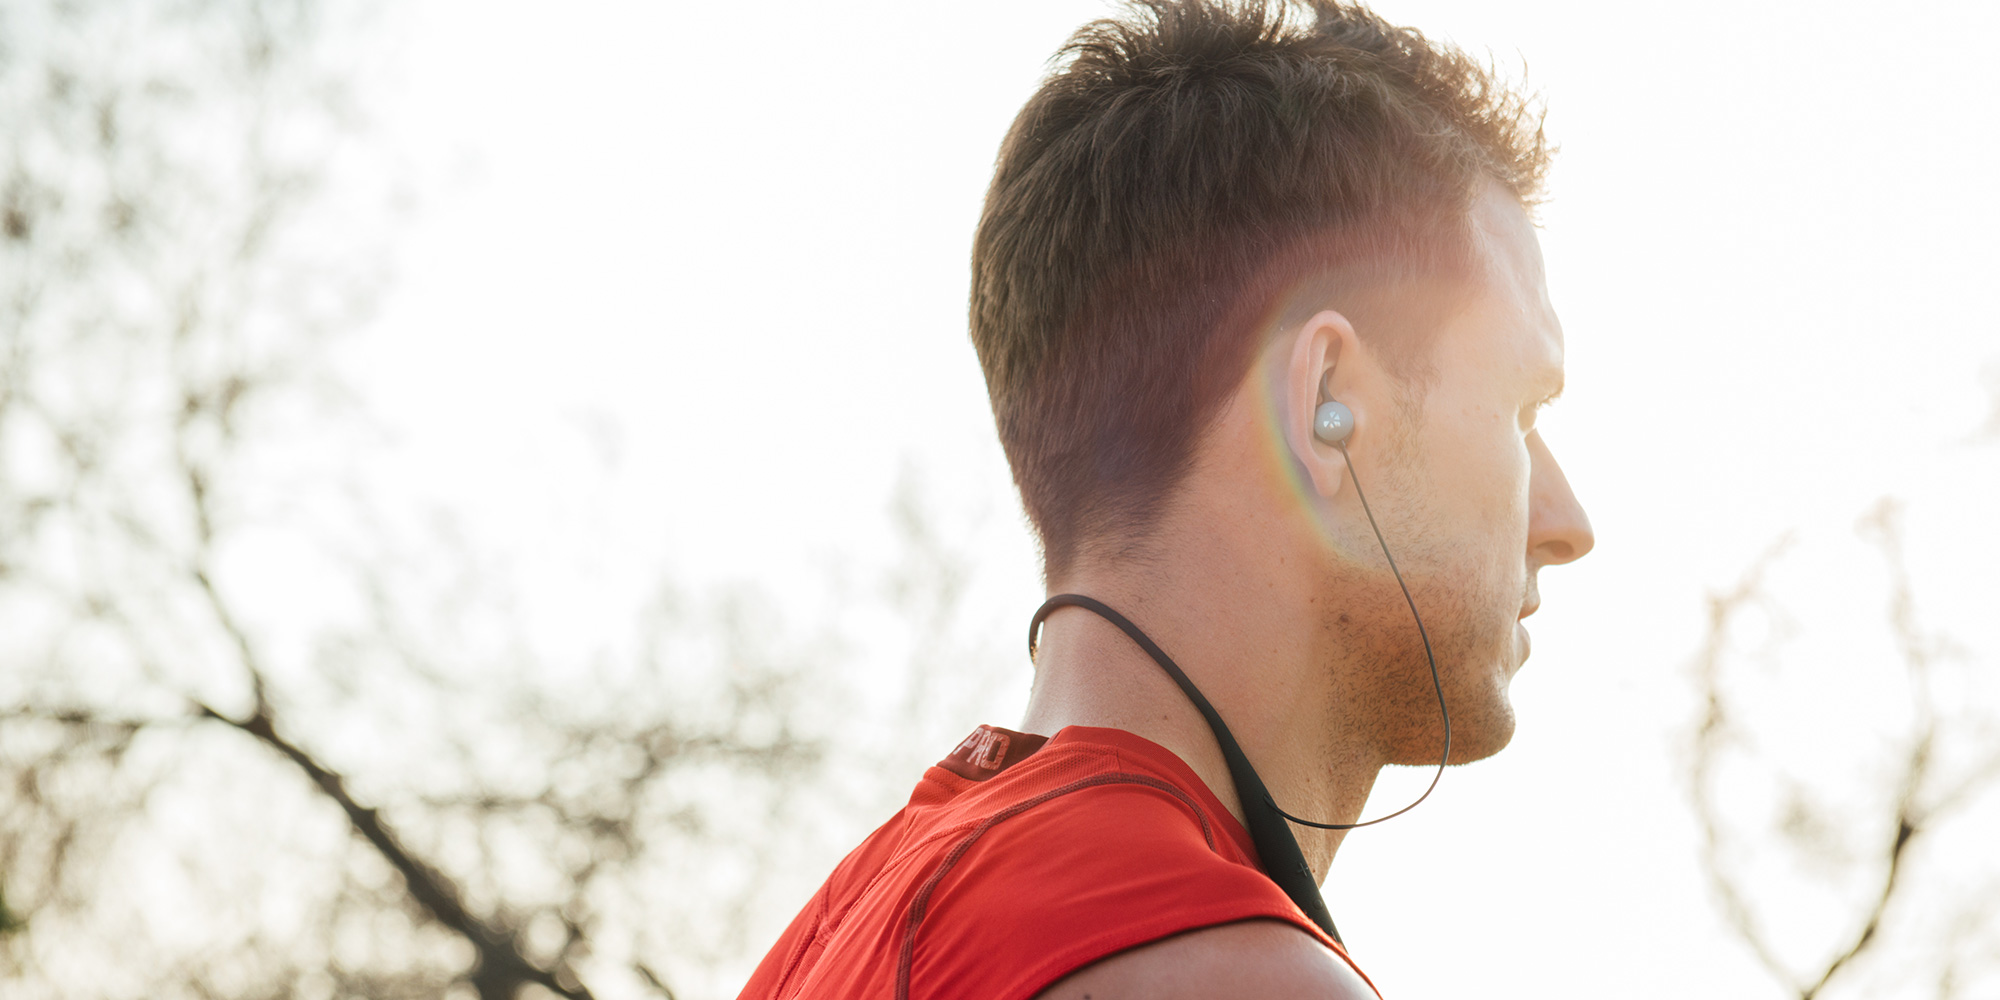 AI workout headphones help keep track of your vitals and more: $180 (Reg. $250)